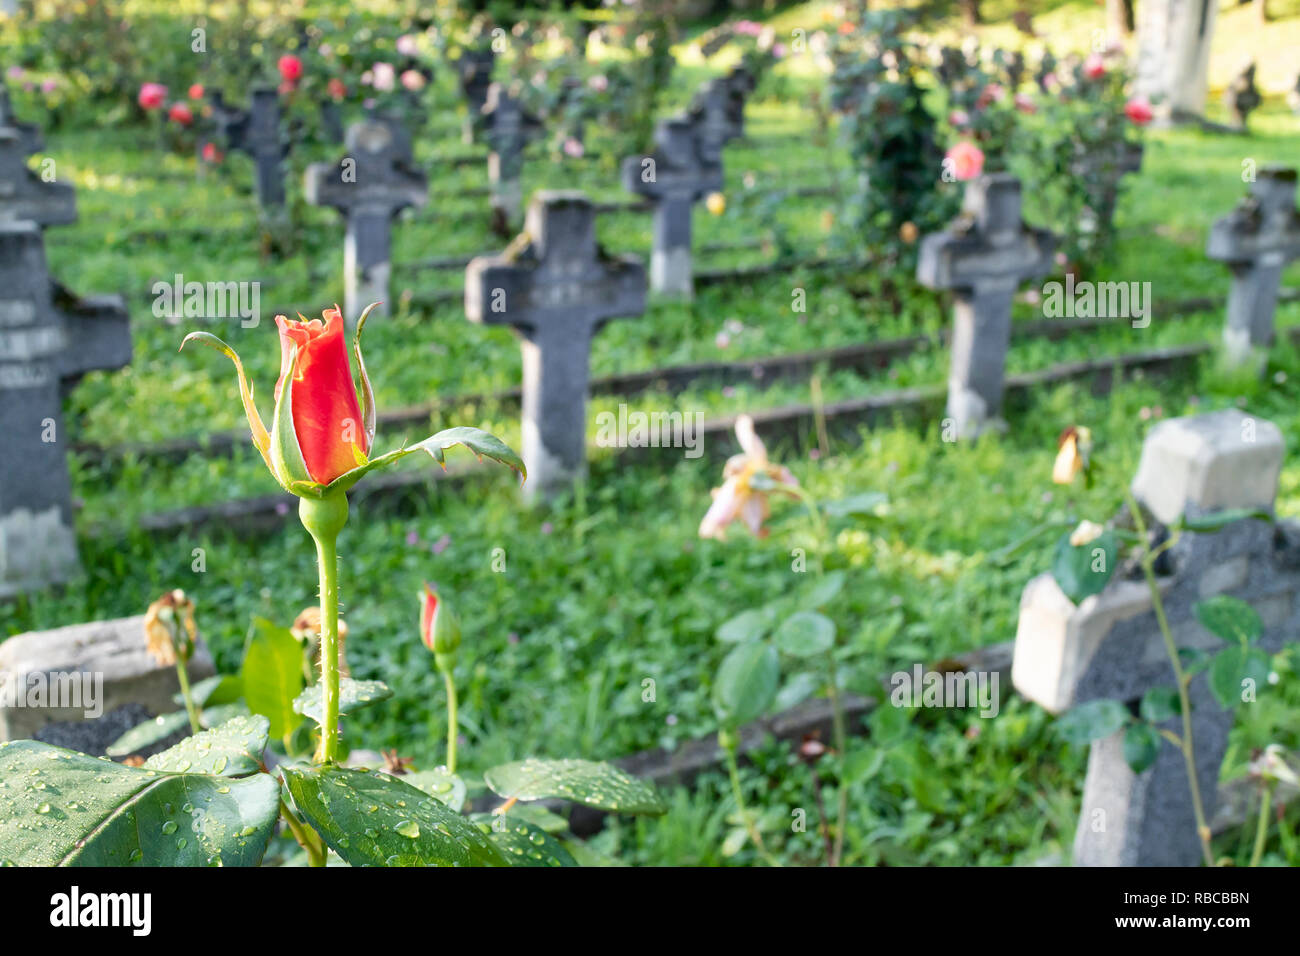 A red rose with the blurry background of the military cemetery in Cluj, Romania - Stock Image